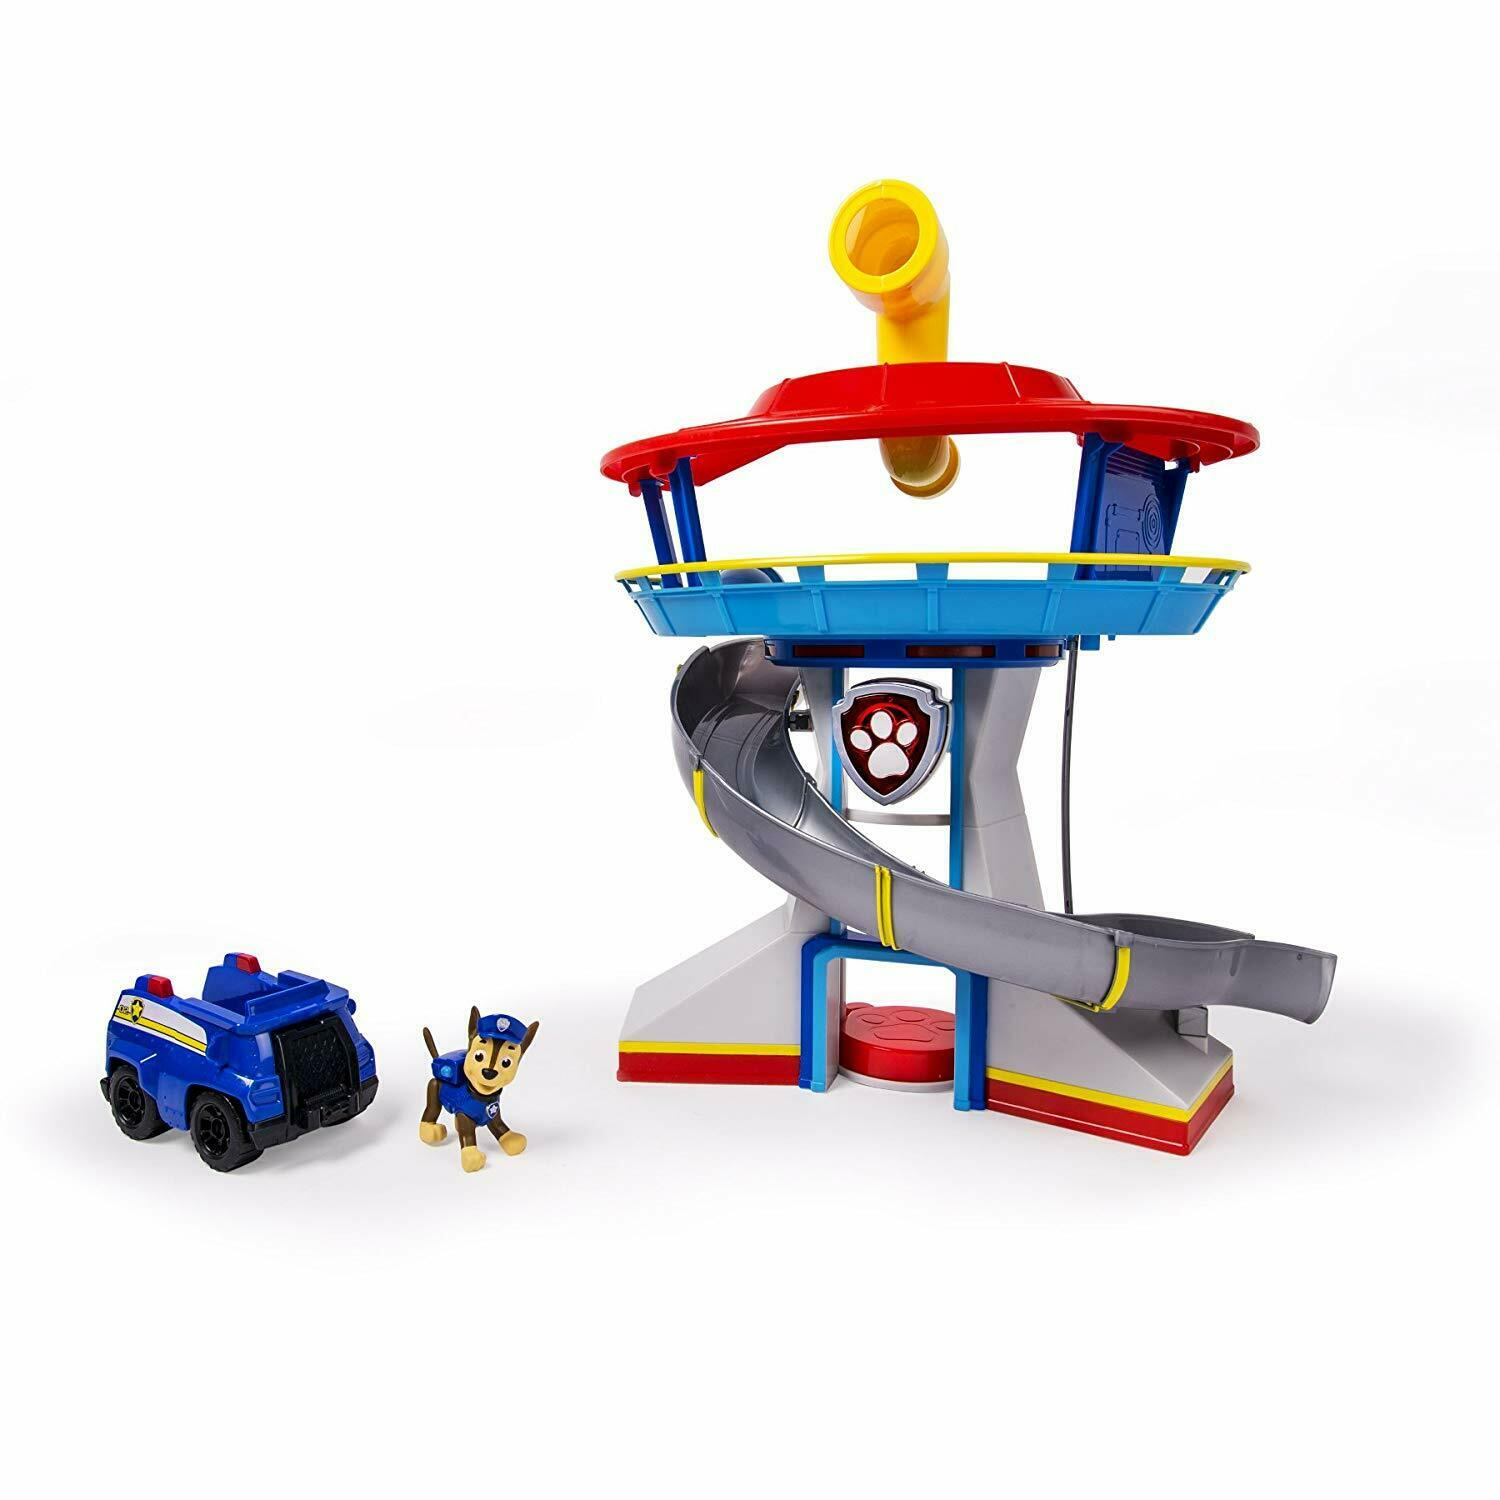 New Paw Patrol Look-out Tower with Figure and Vehicle Playset